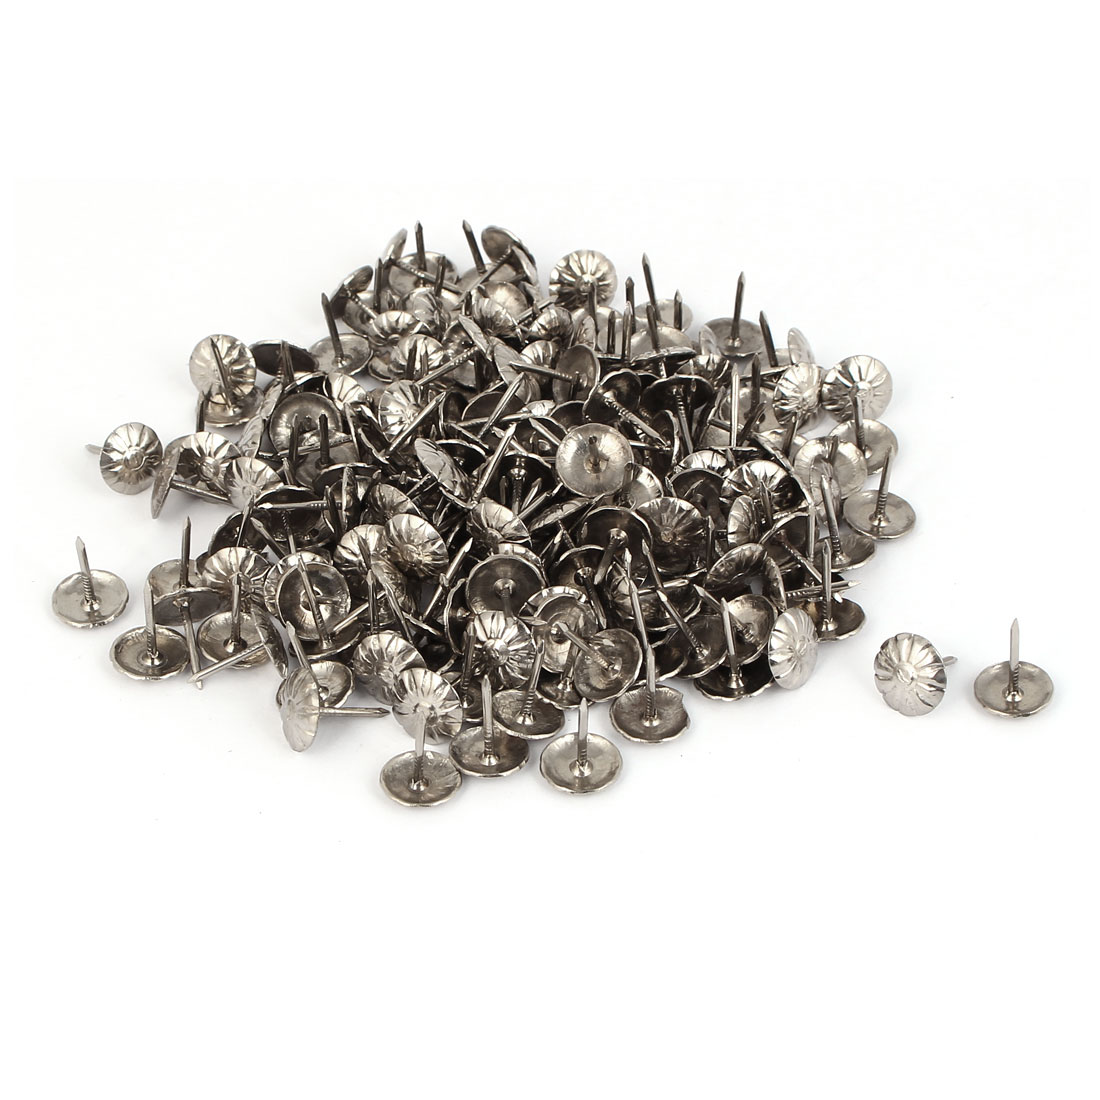 Notice Message Board Corkboard Iron Thumb Tacks Drawing Pins Silver Tone 300pcs